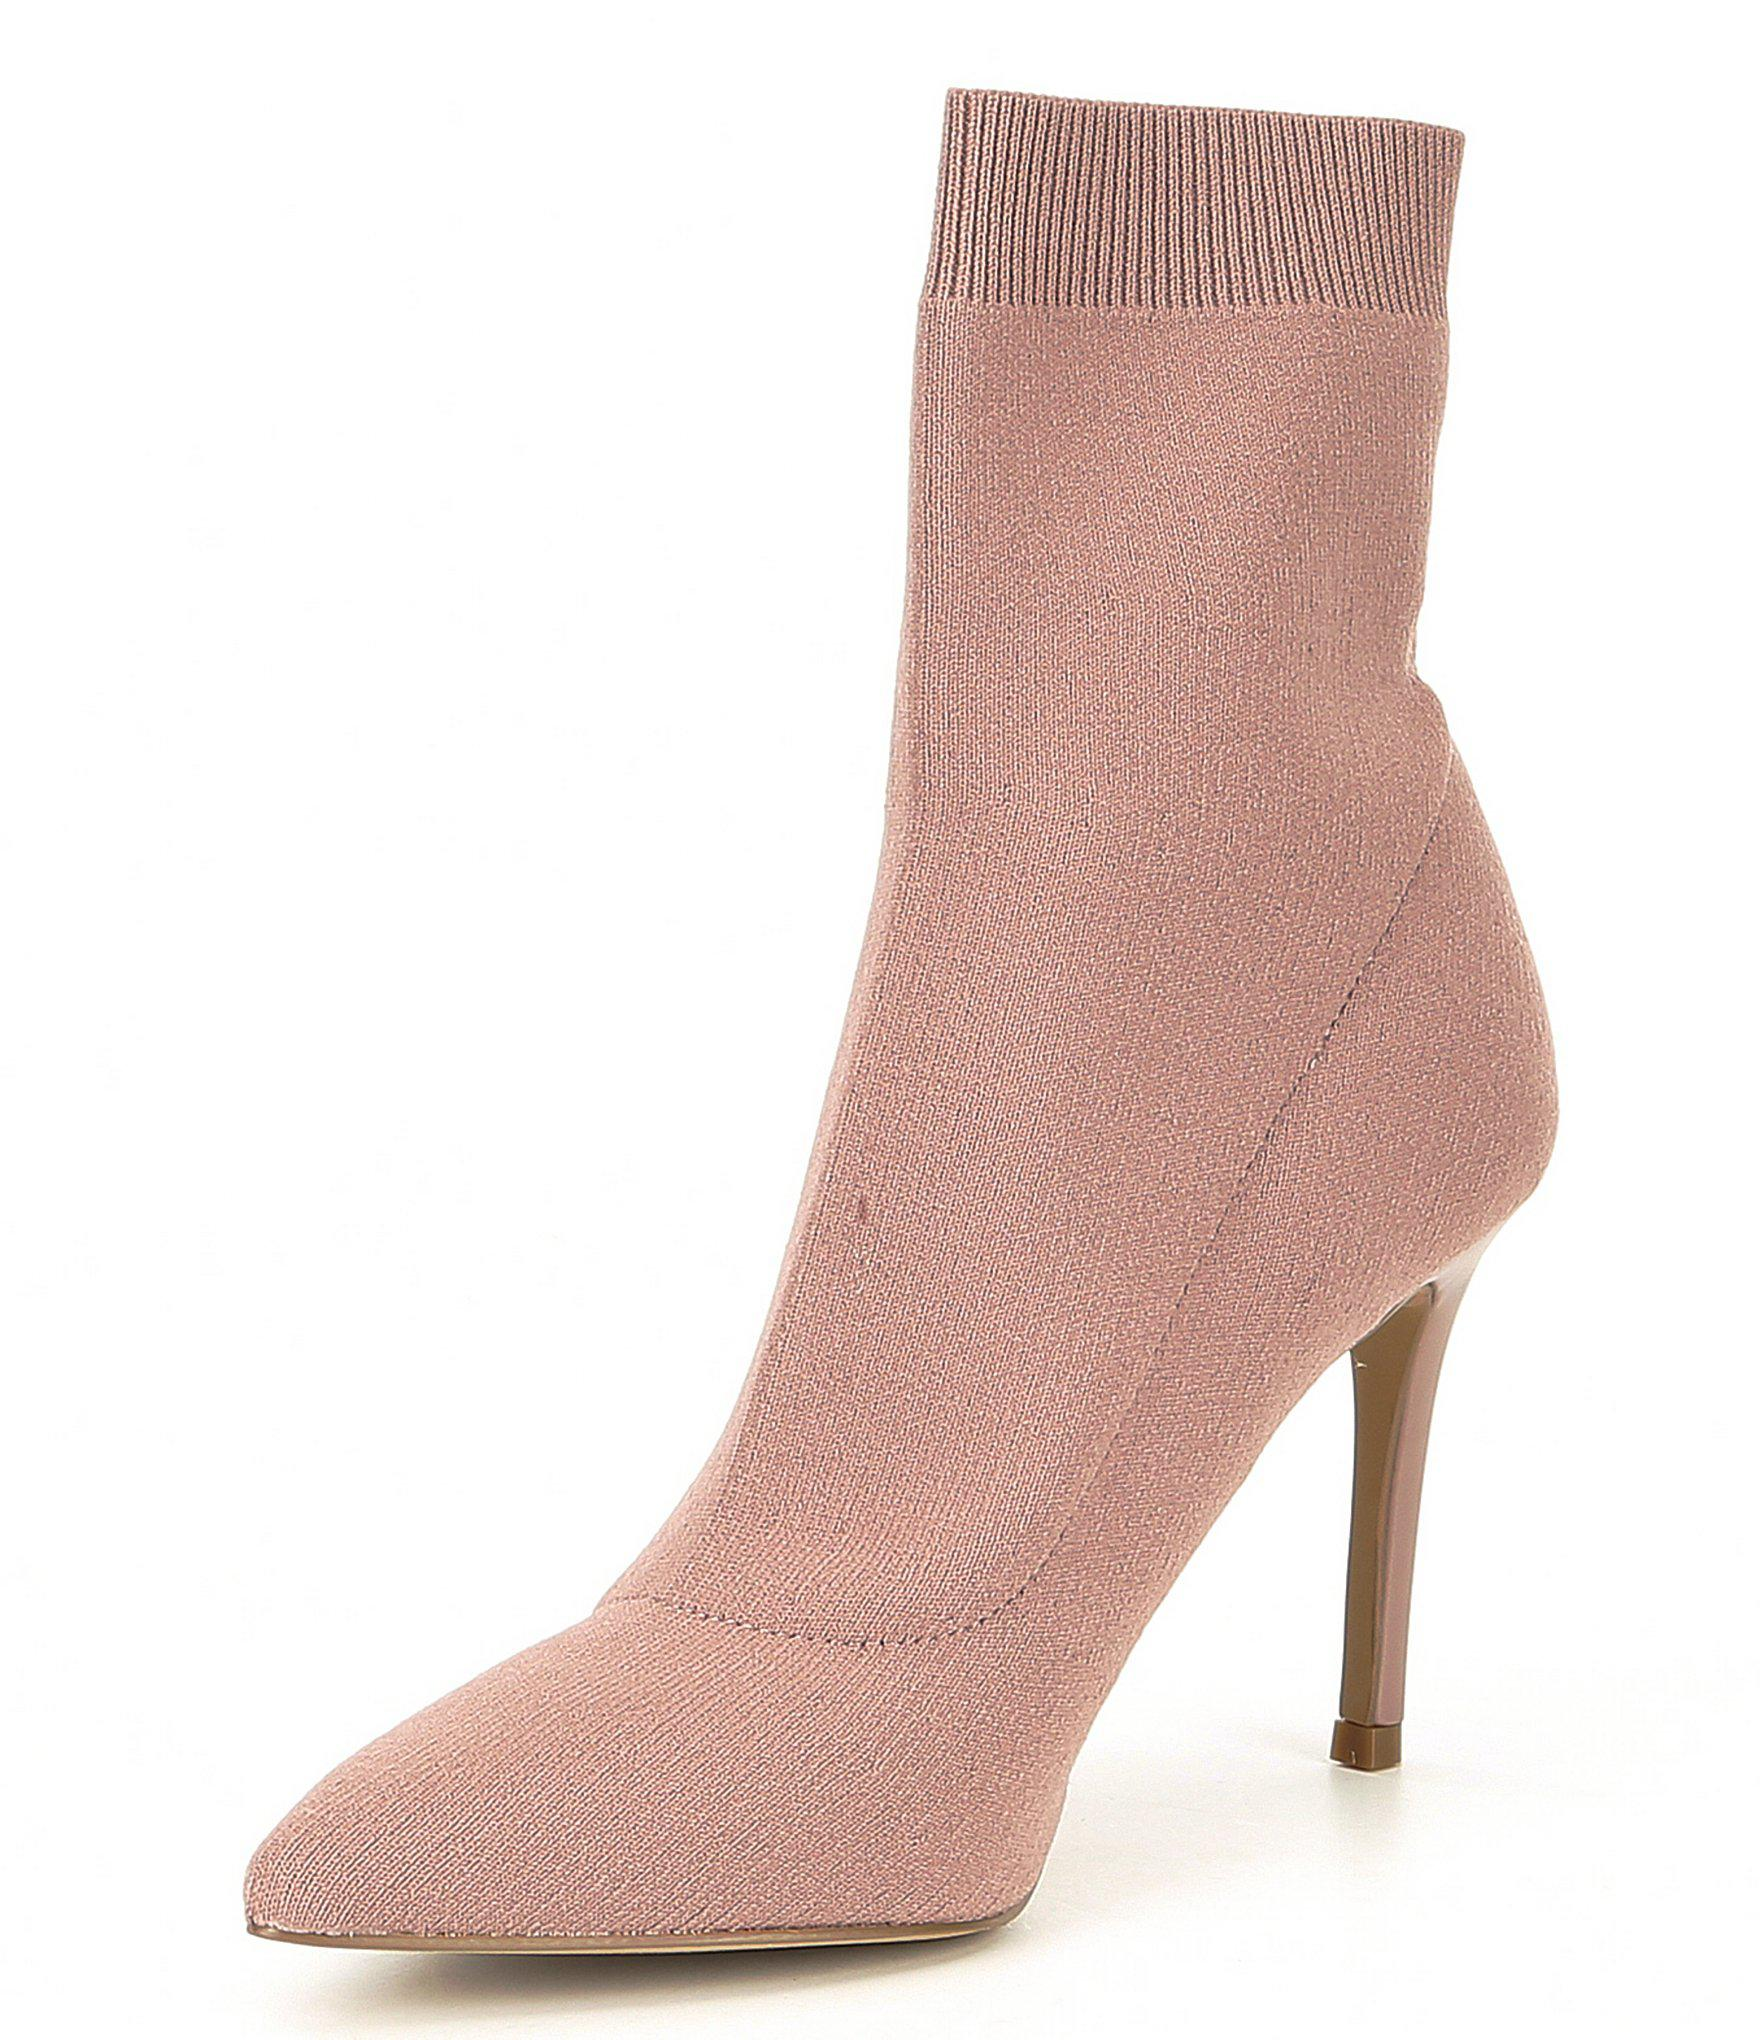 69120fd6dd6 Lyst - Steve Madden Claire Knit Stiletto Booties